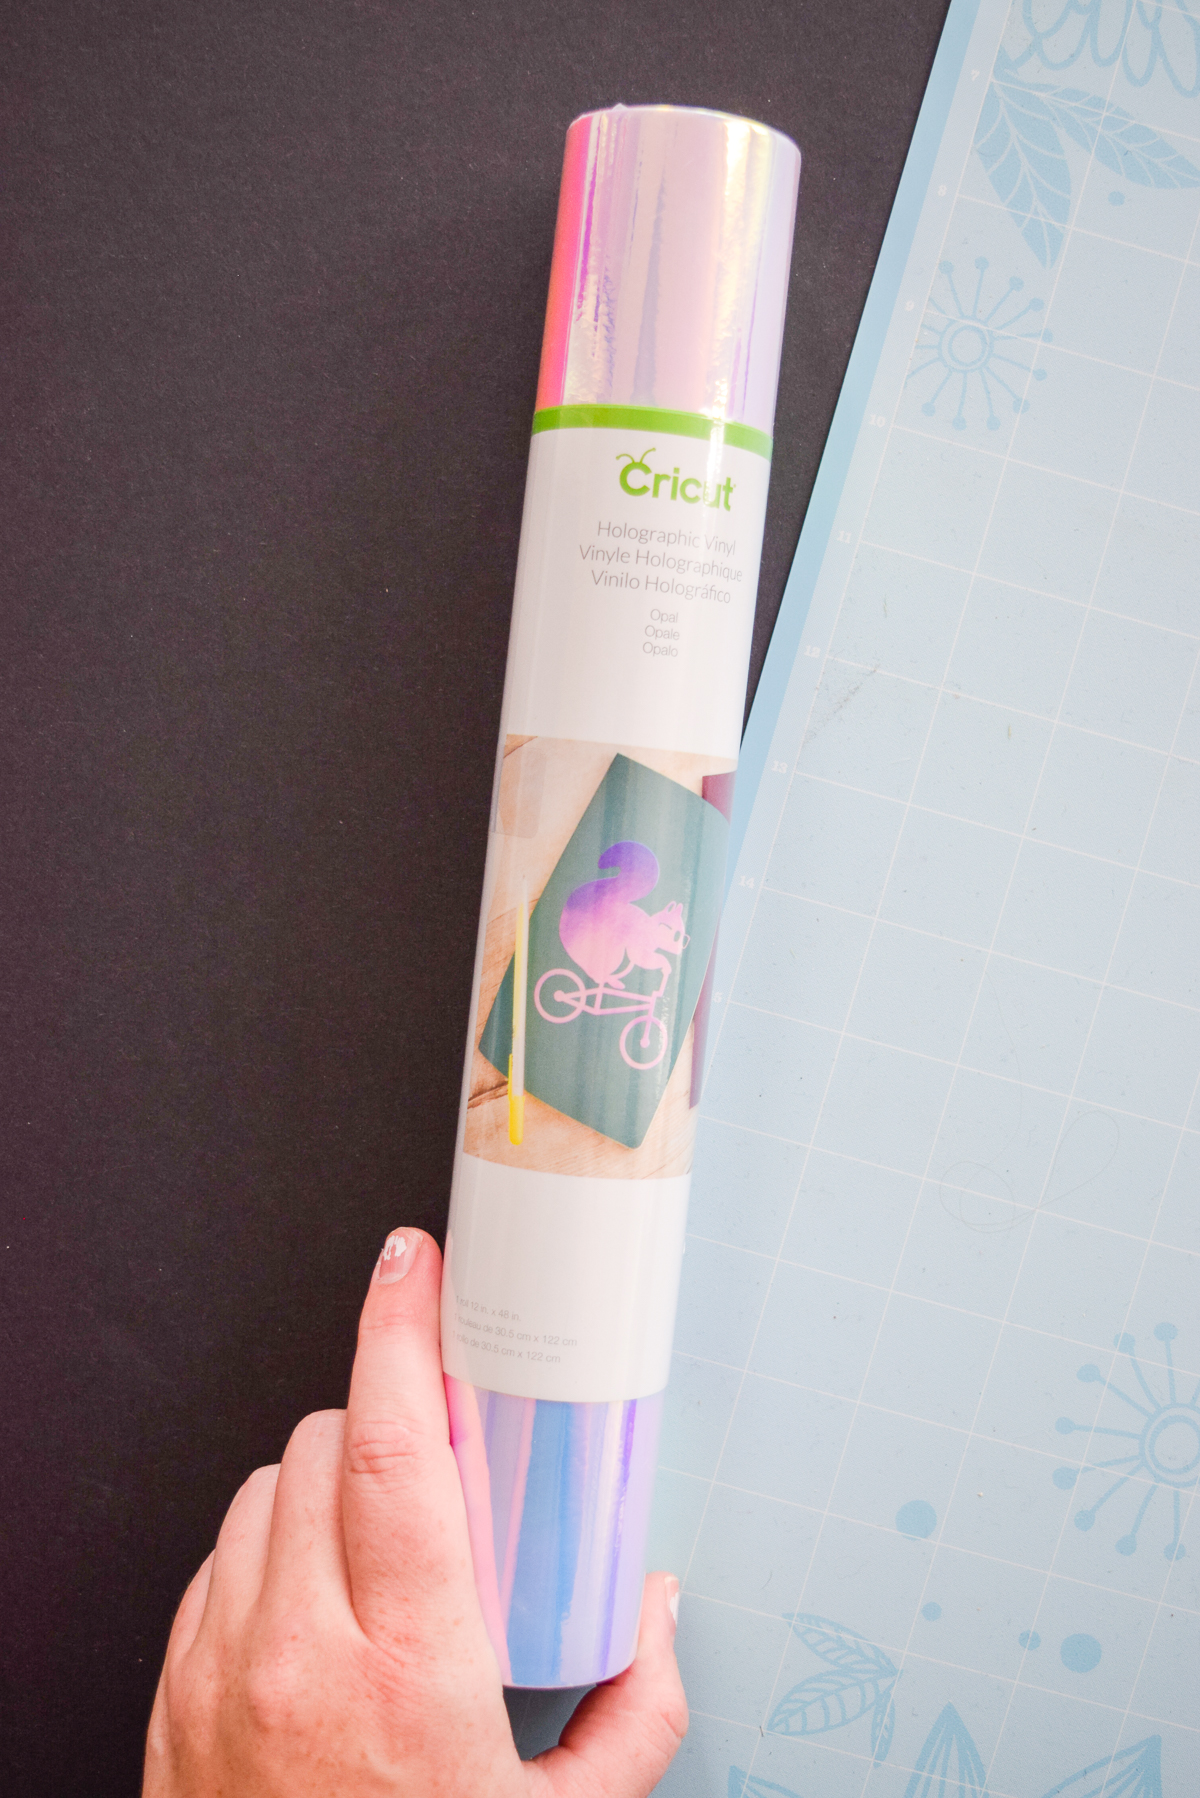 roll of Cricut holographic vinyl